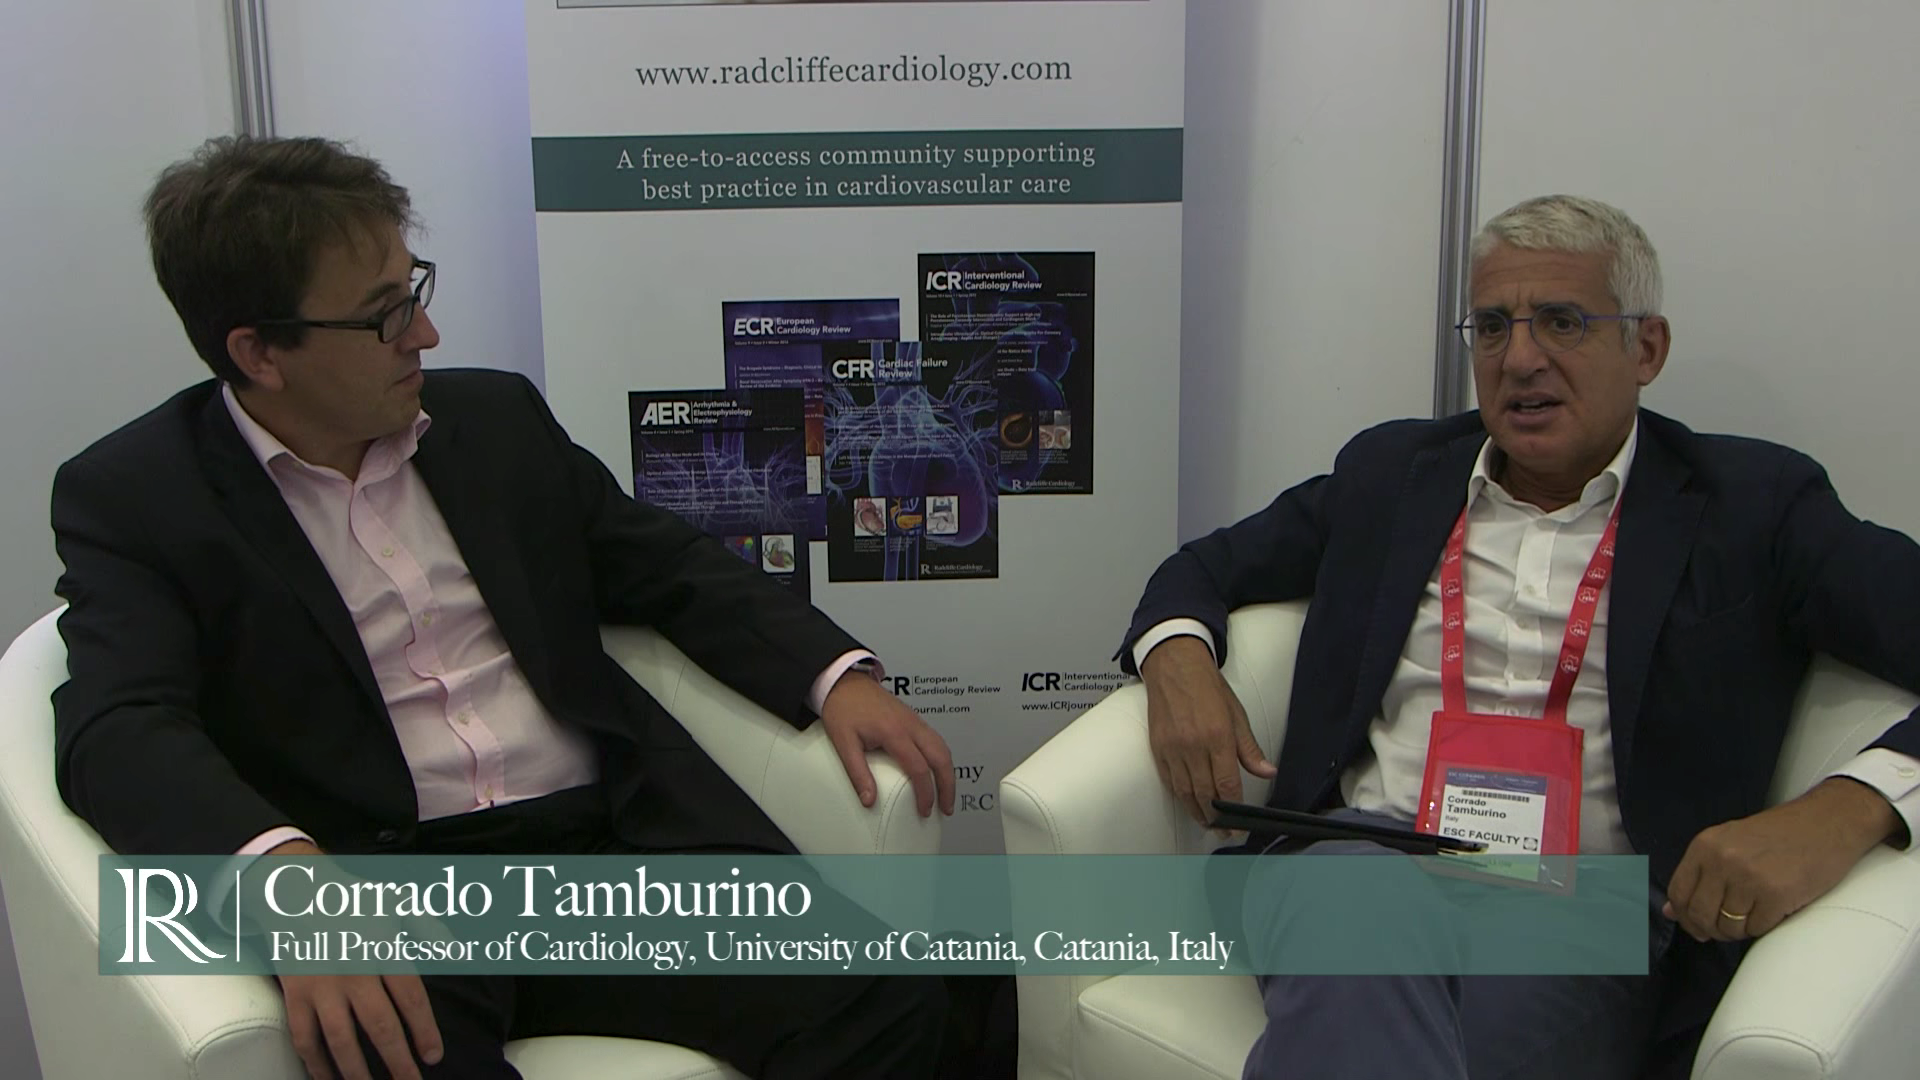 ESC 2015: IVUS In Complex Lesions discuss with Justin Davies and Corrado Tamburino